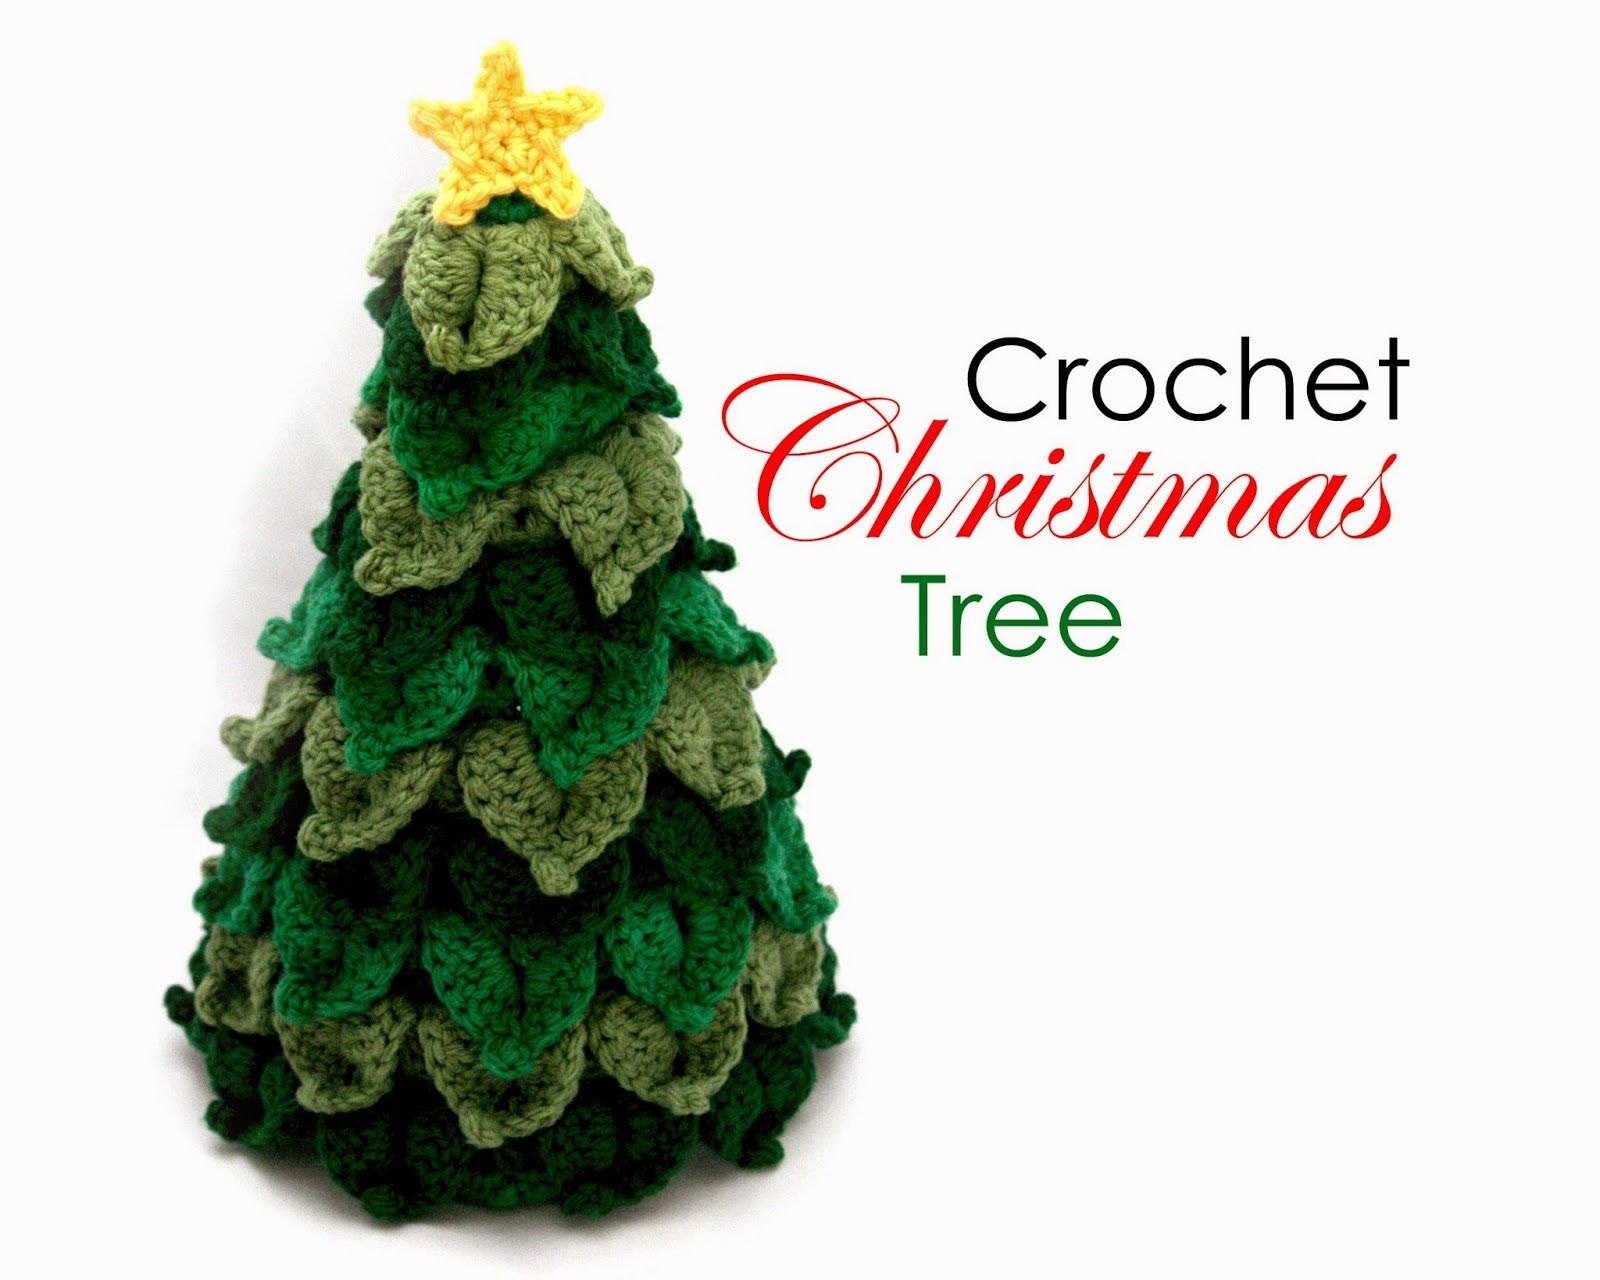 Little abbee o crochet christmas tree crochet tutorial crochet christmas tree about 25 cm tall according to pattern ill try this next year little abbee tutorial teresa restegui bankloansurffo Choice Image